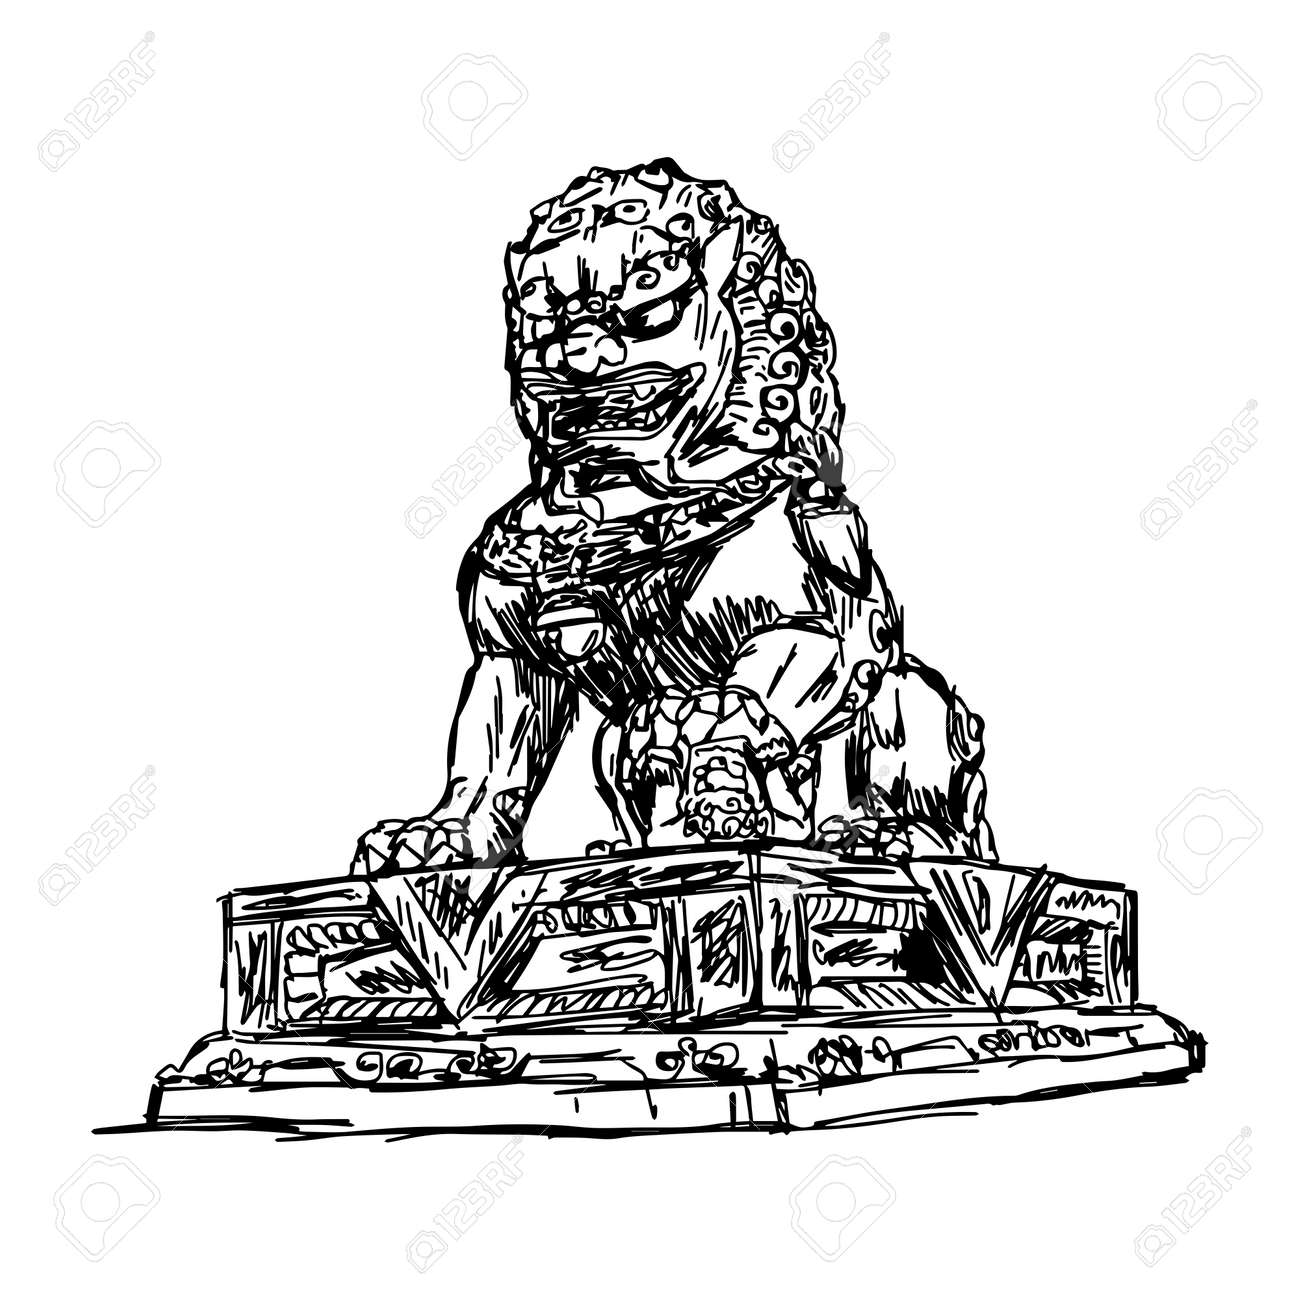 Illustration Vector Doodle Hand Drawn Of Sketch Big Bronze Lion In Forbidden City China